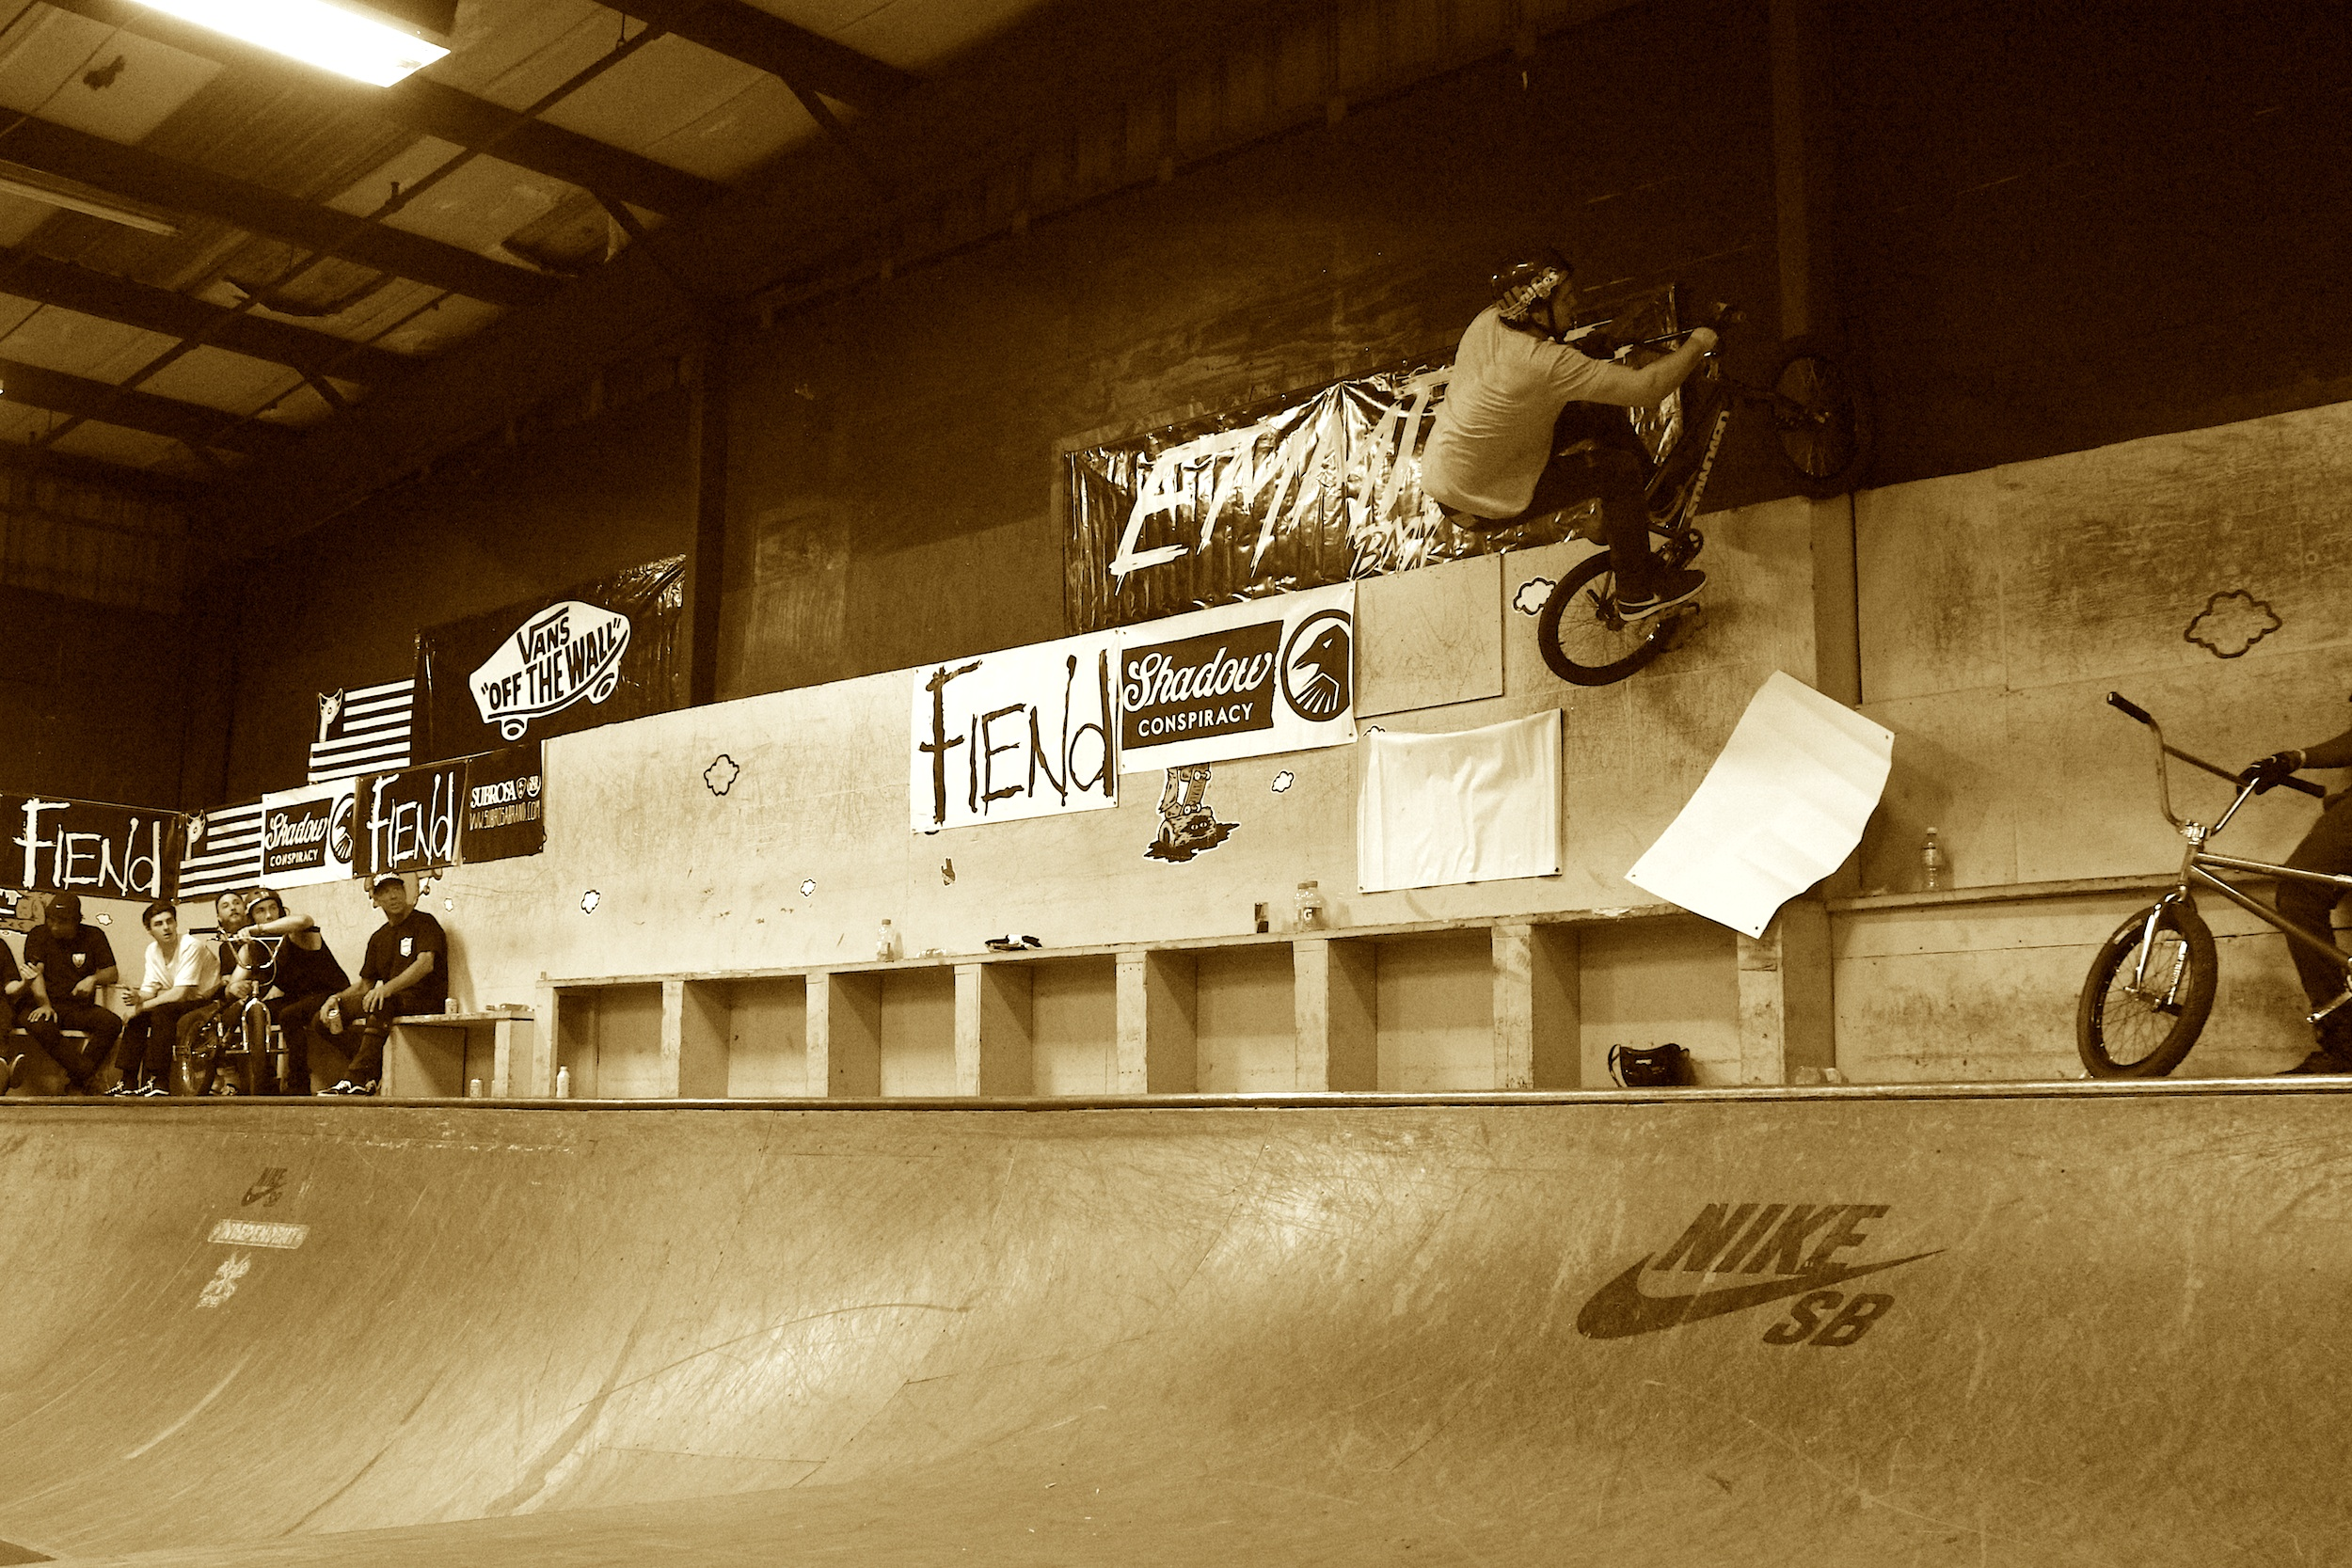 John DelBalso. All the way from Cleveland. Wall Smith during his run in Open. Dude was killing it.